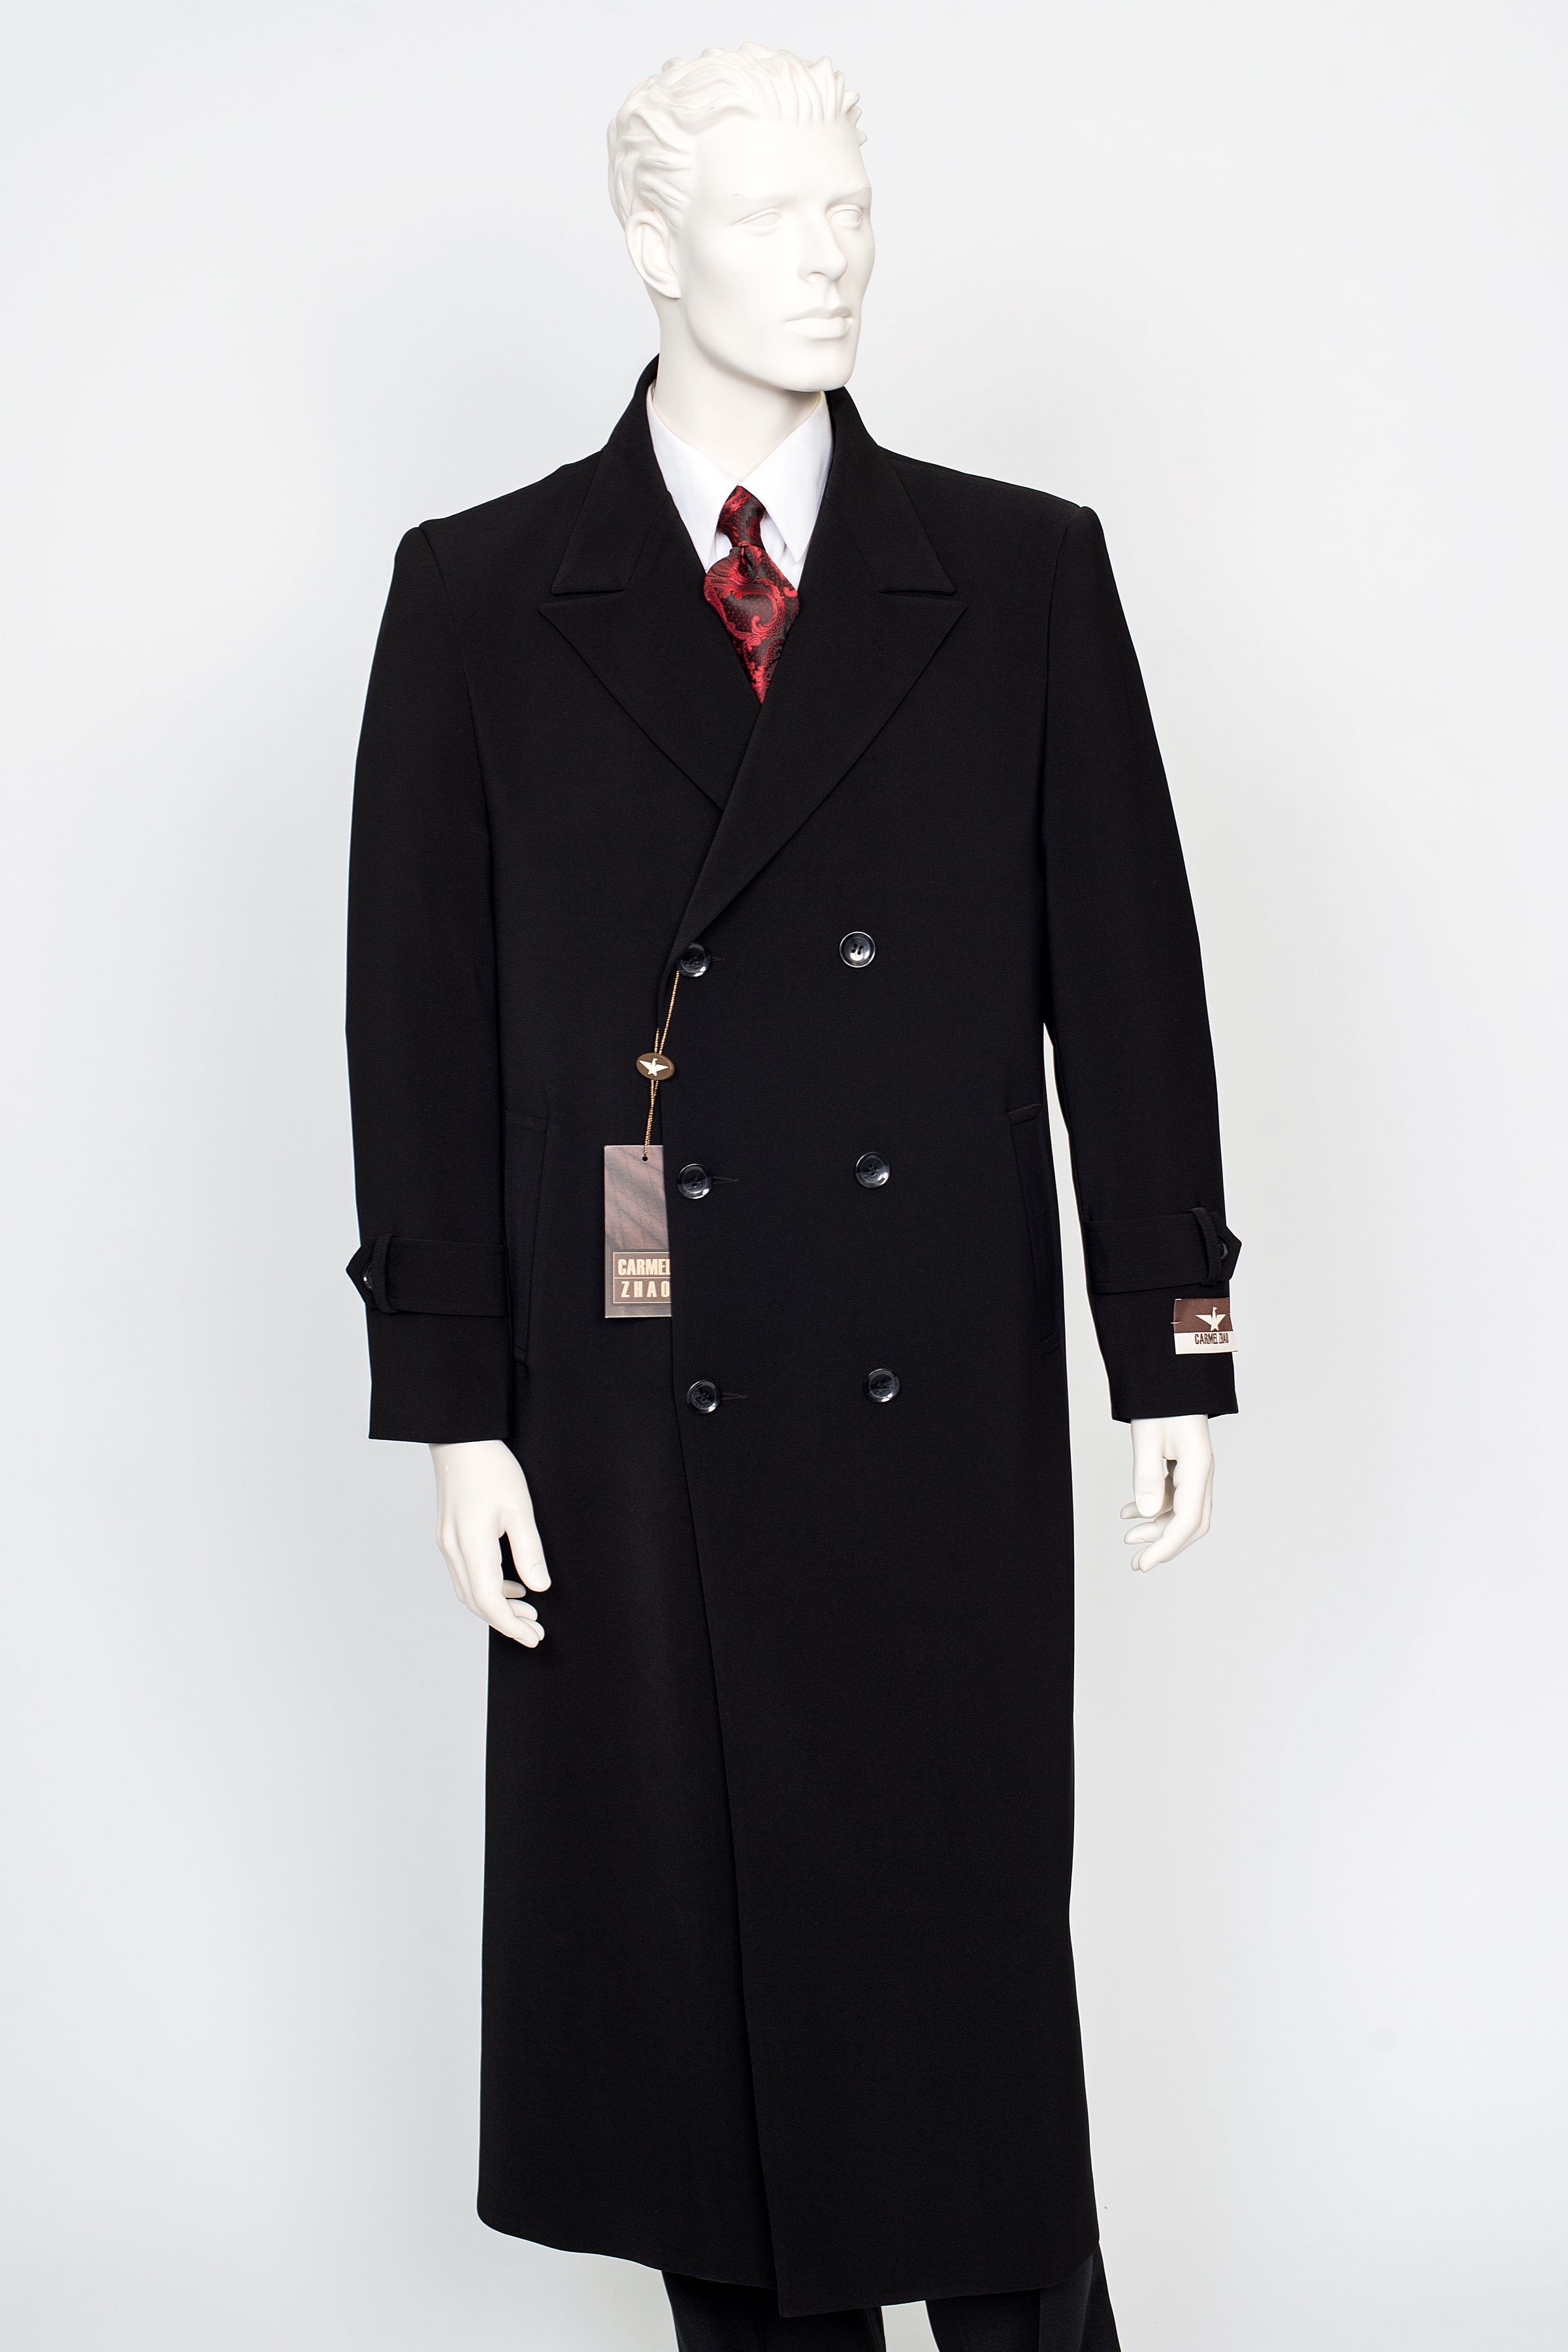 Carmel Zhao Duster Double Breast Coat Black CHICAGO